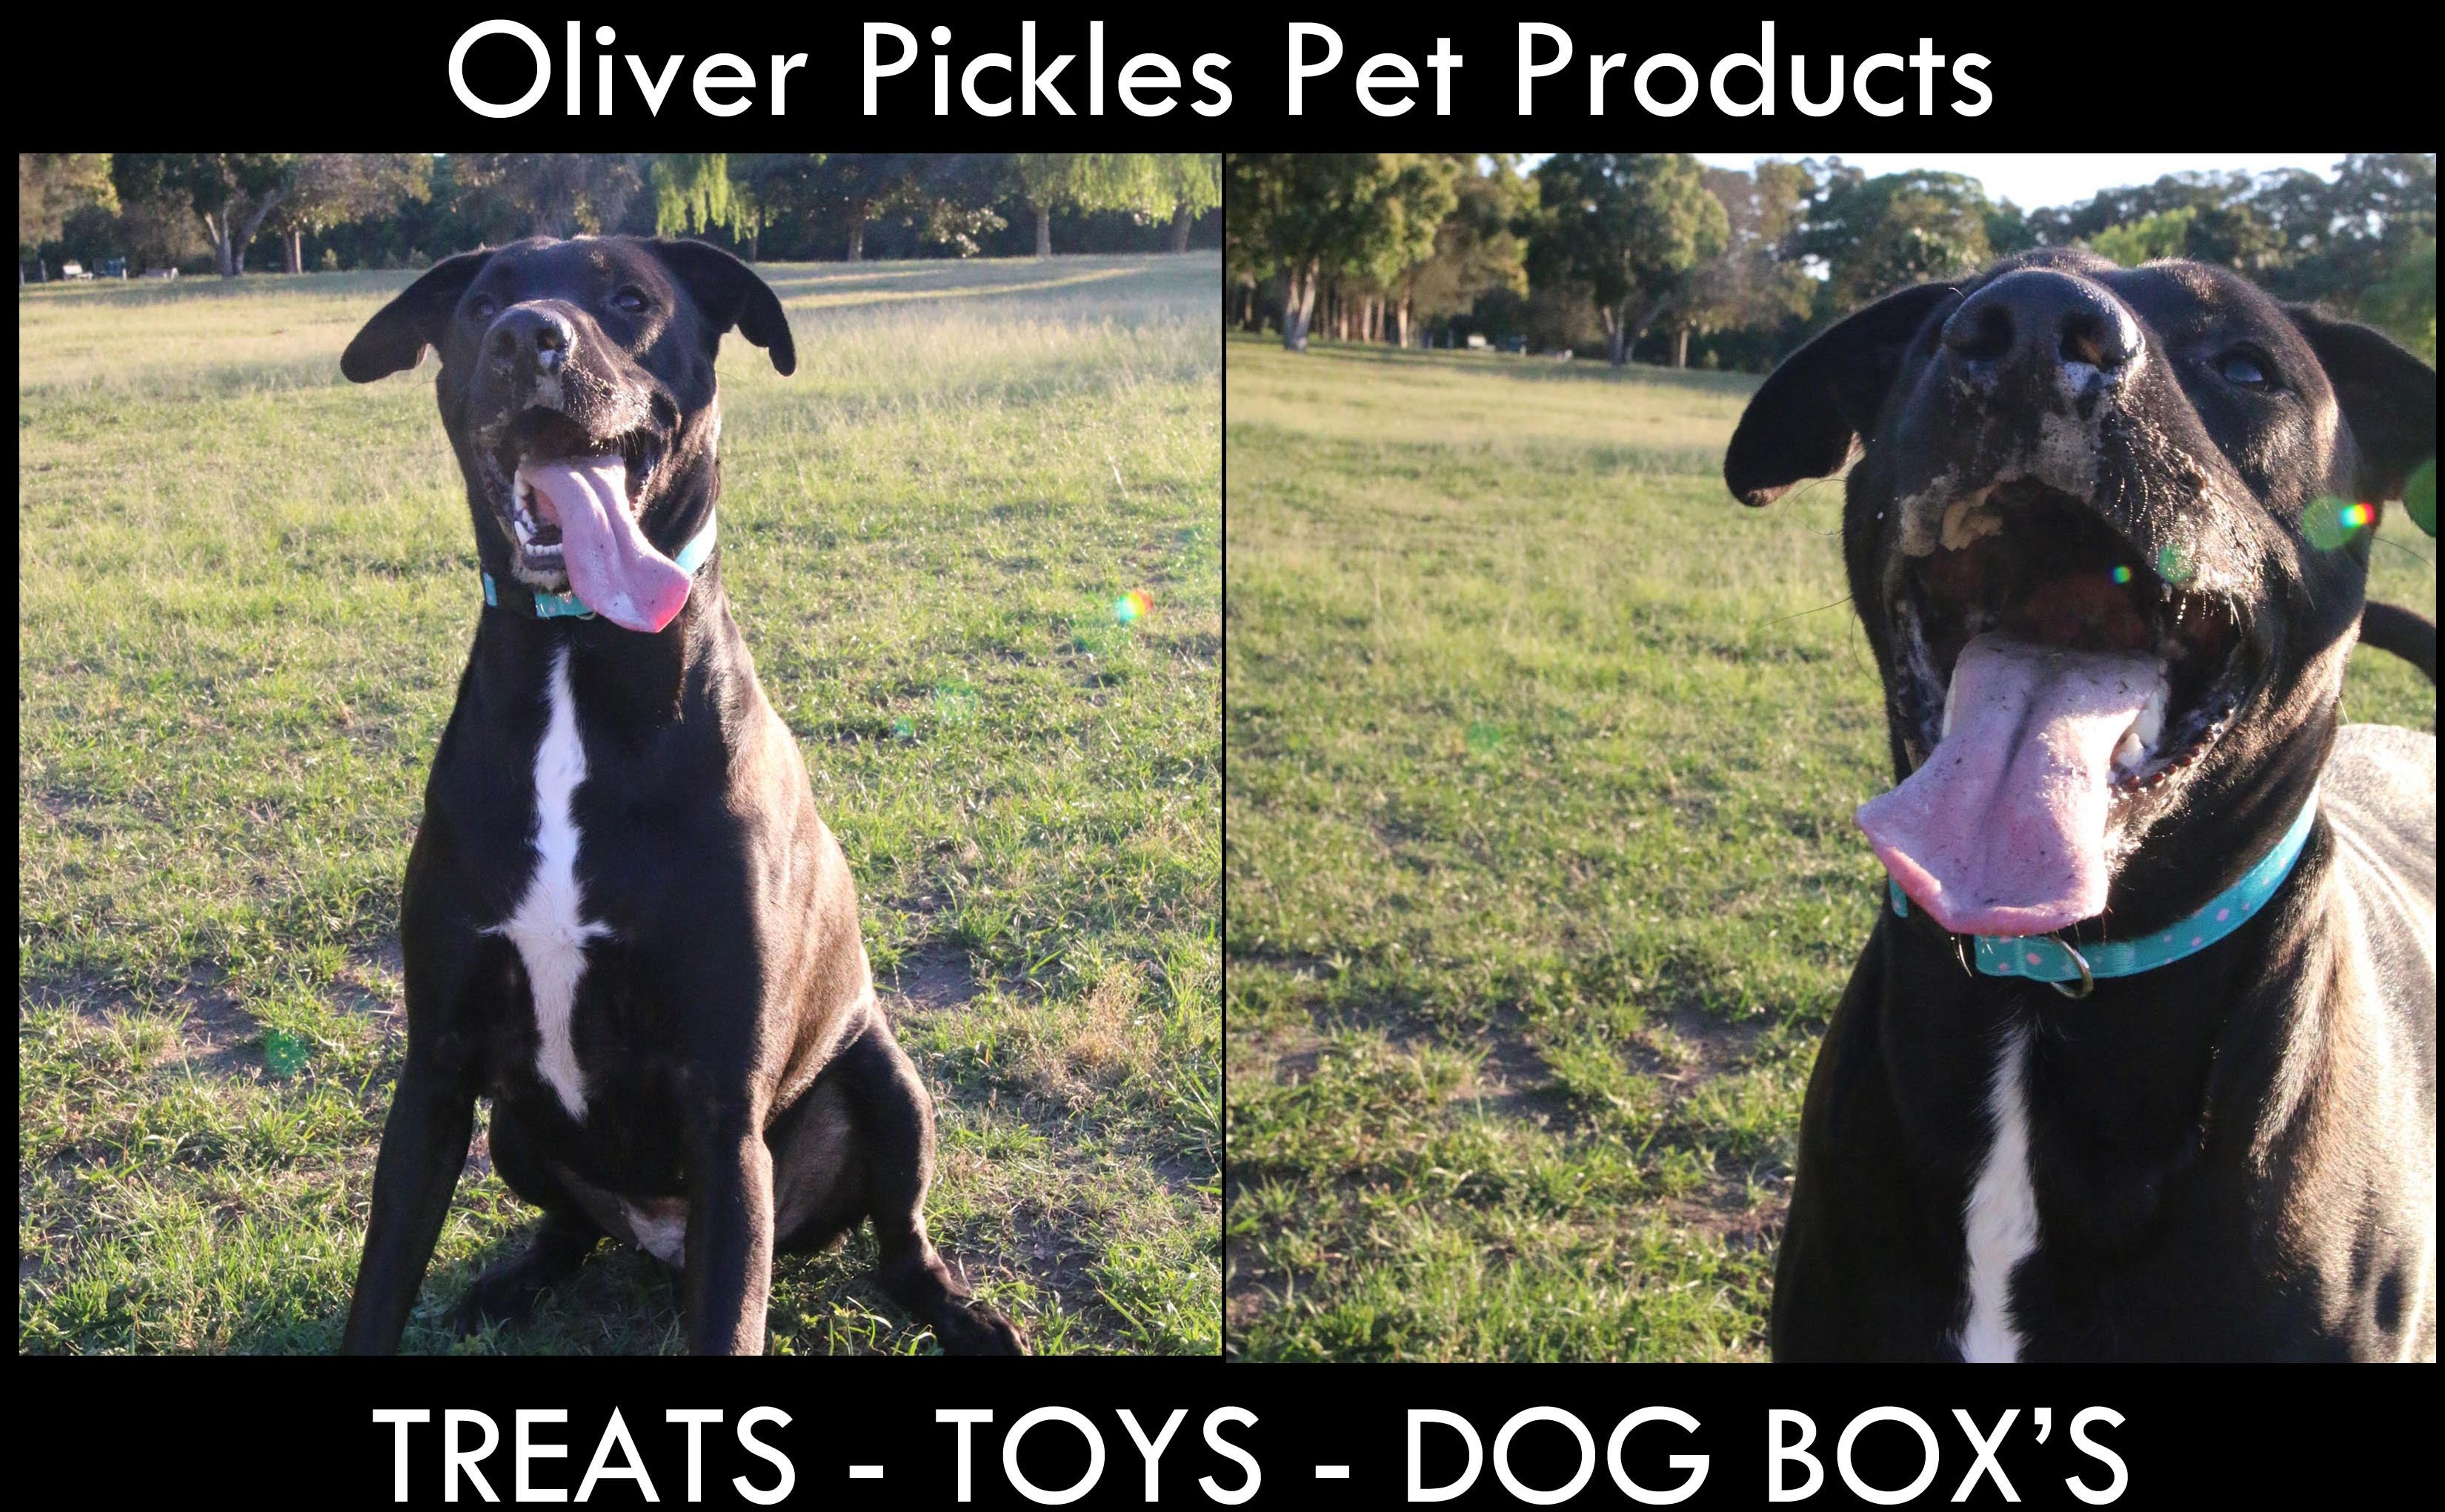 Oliver Pickles Pet Products